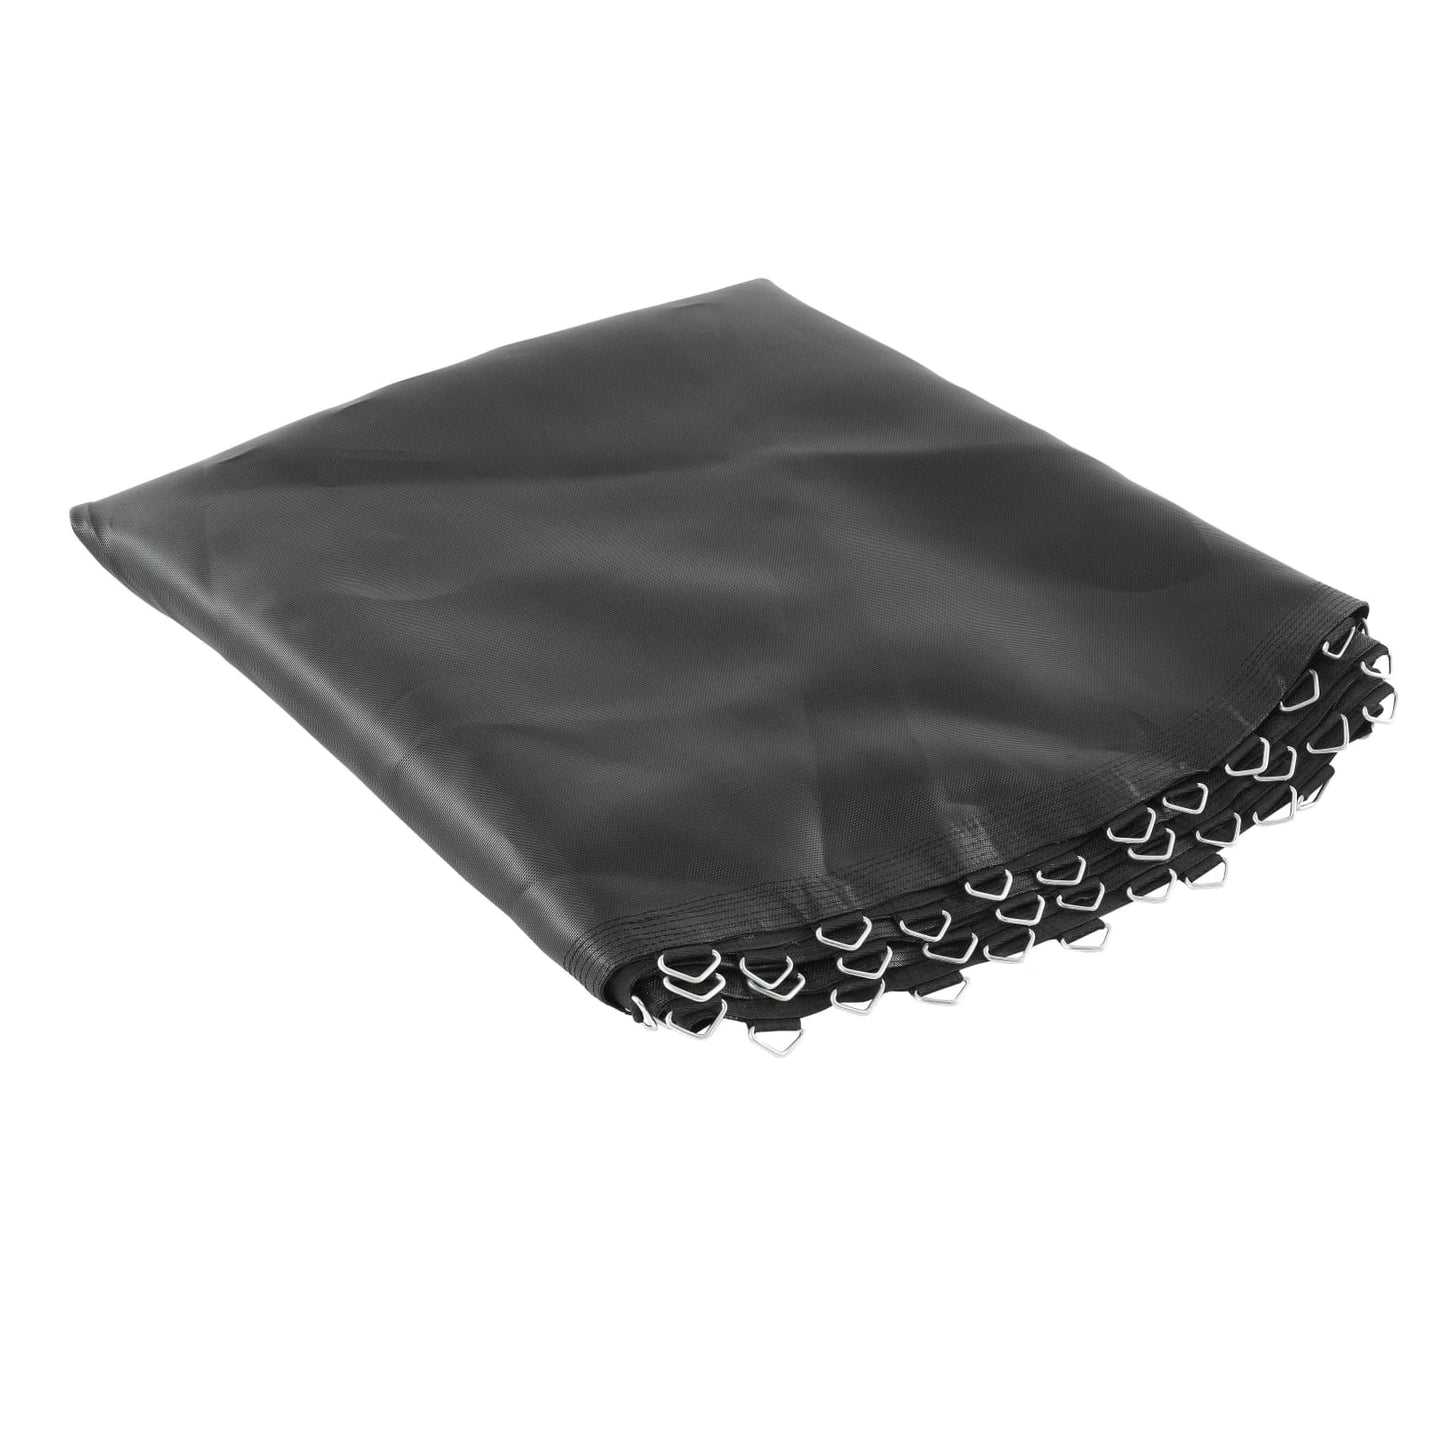 Upper Bounce Trampoline Replacement Jumping Mat Fits For 14 Ft. Round Frames W/ 84 V-Rings 8.5 Springs - Trampoline Replacements